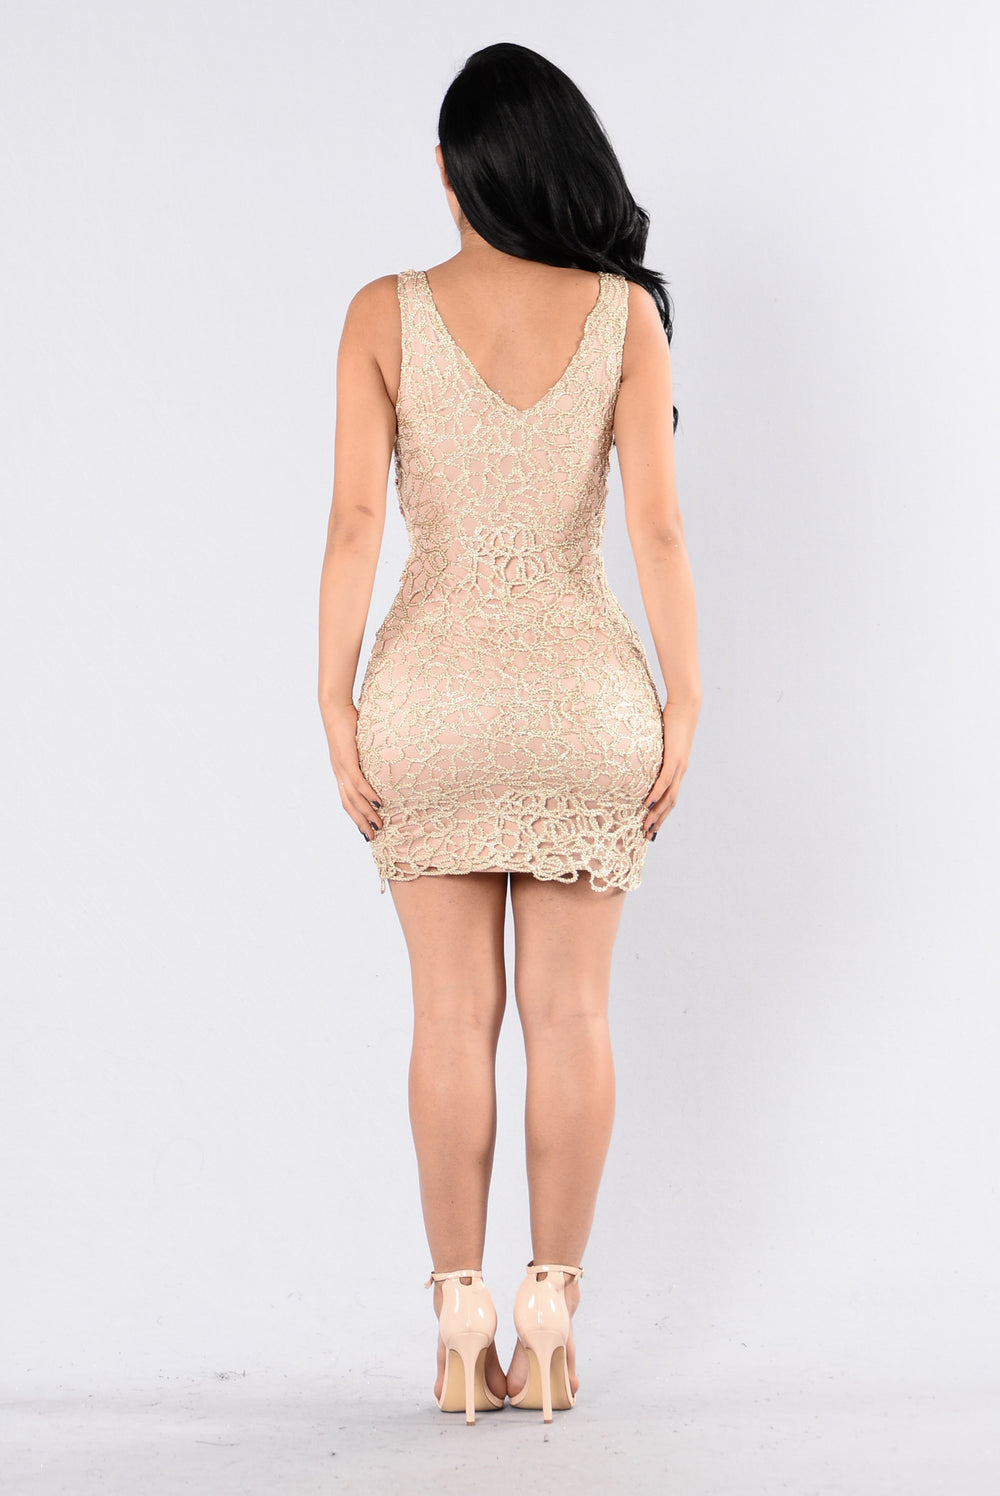 Barely Nude Dress - Gold